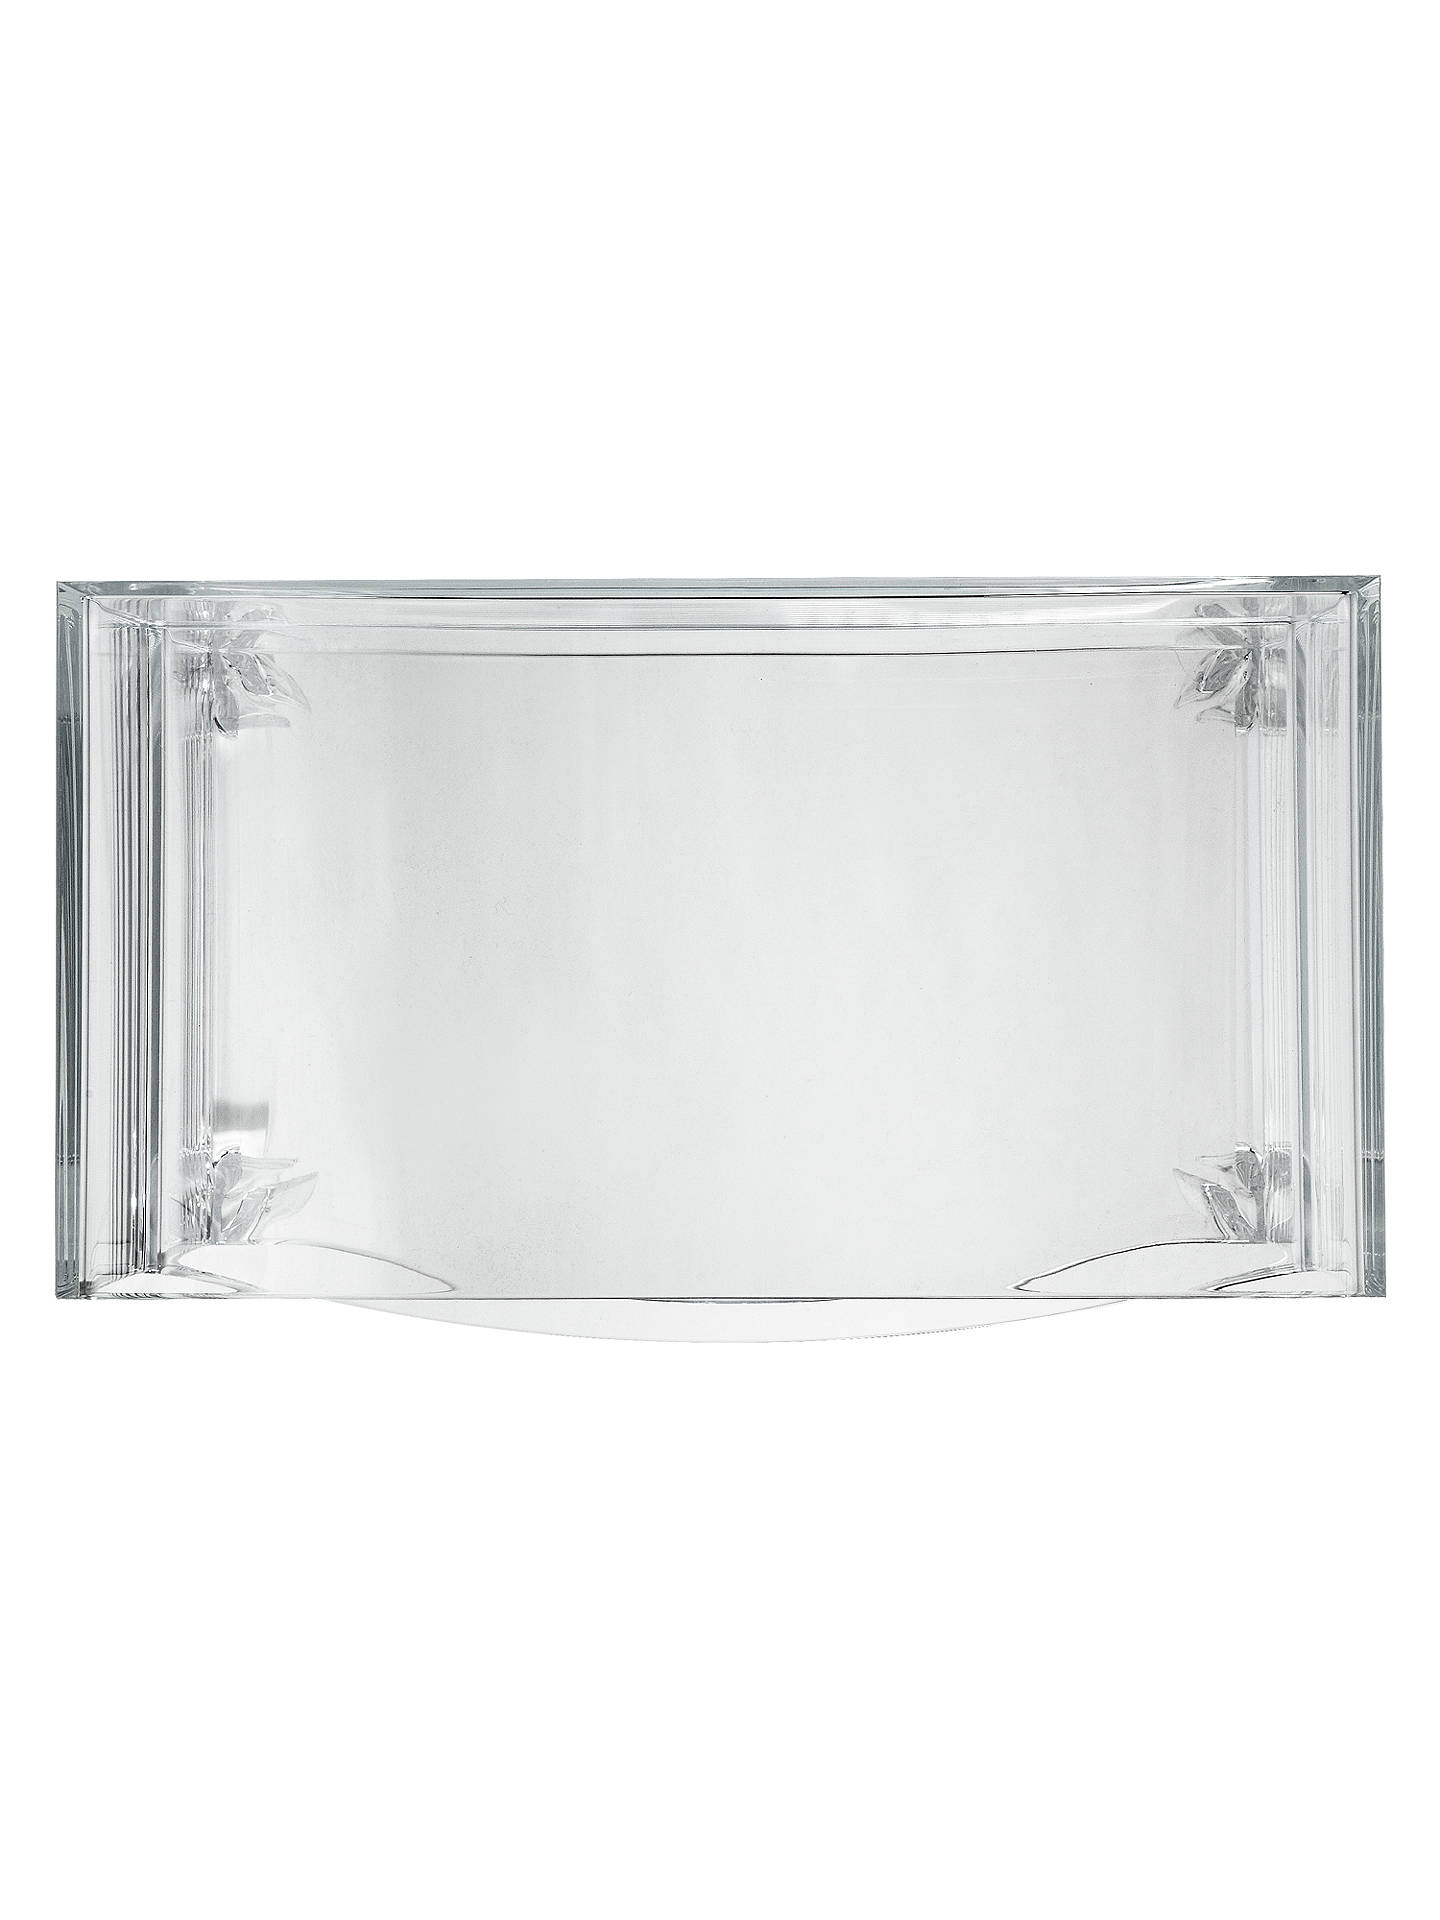 Philippe Starck For Kartell Ghost Buster Commode Crystal Large At